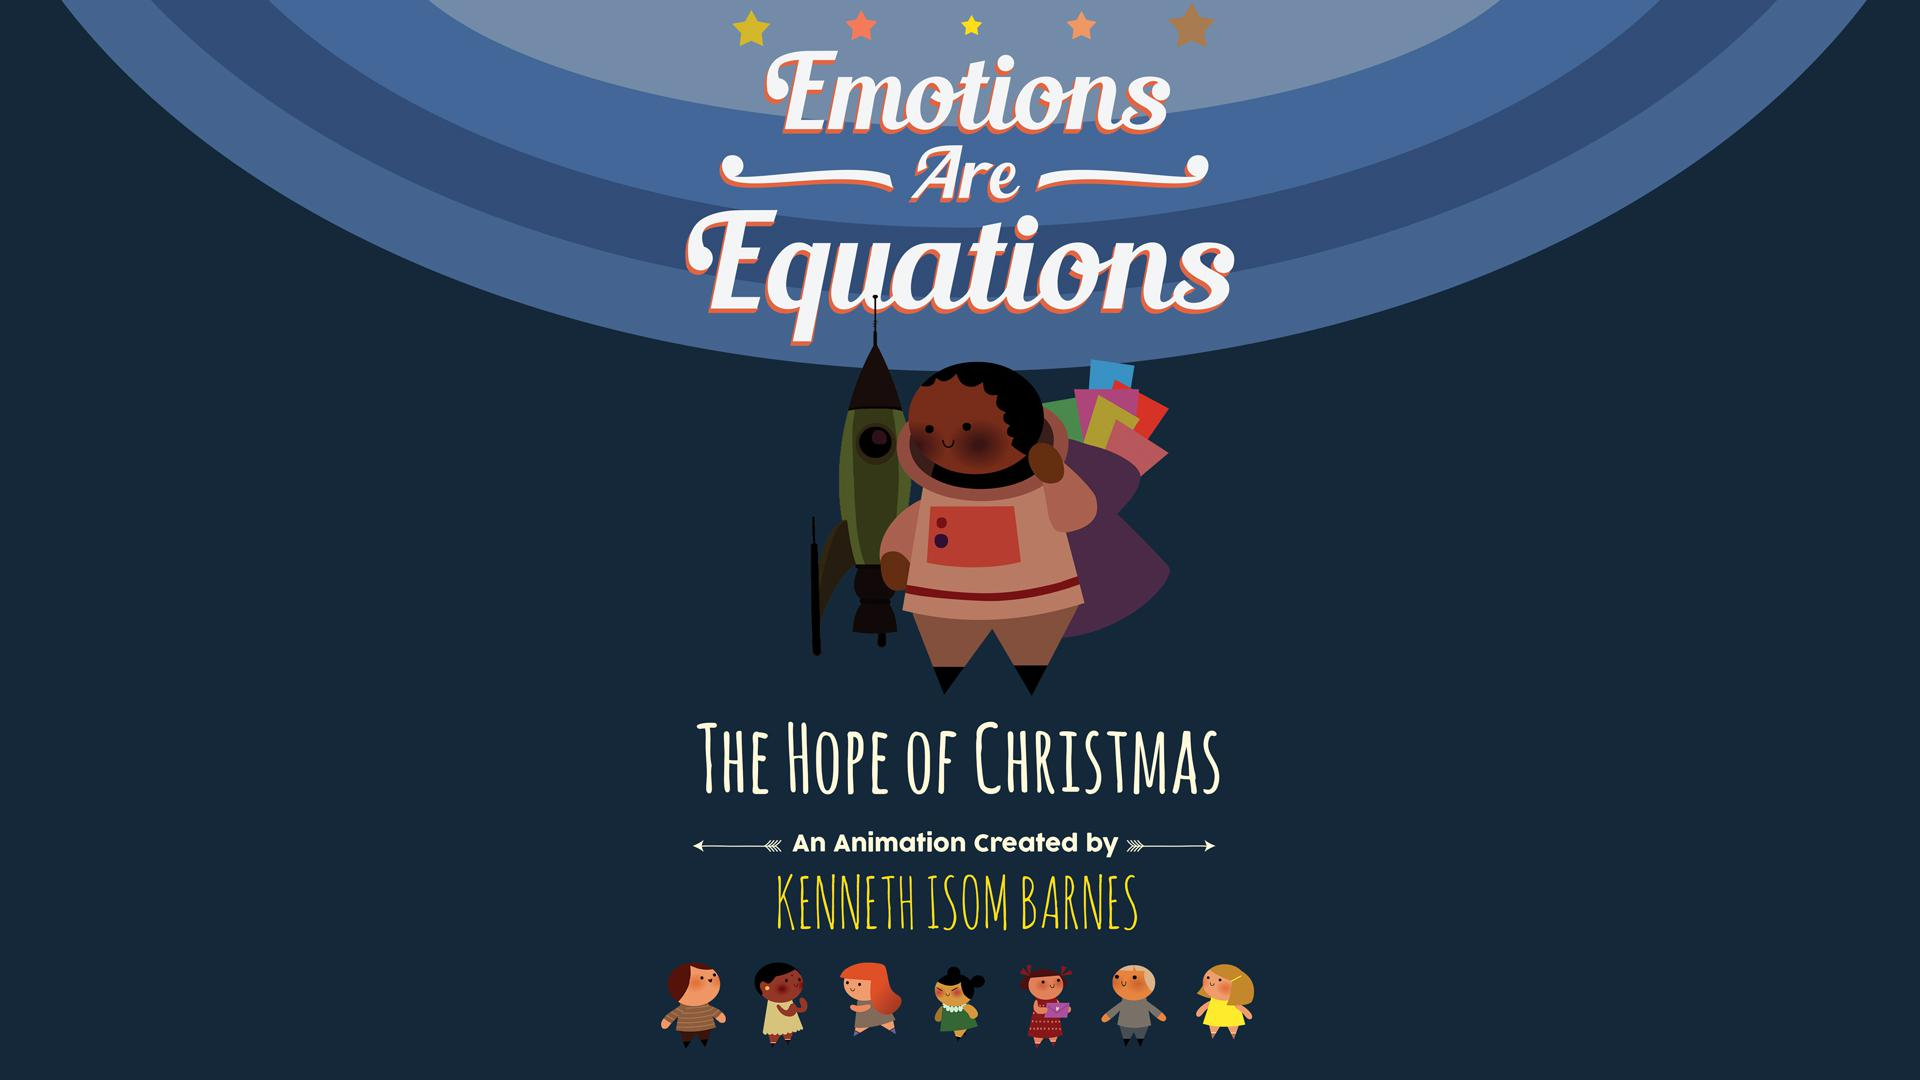 Emotions are Equations: The Hope of Christmas